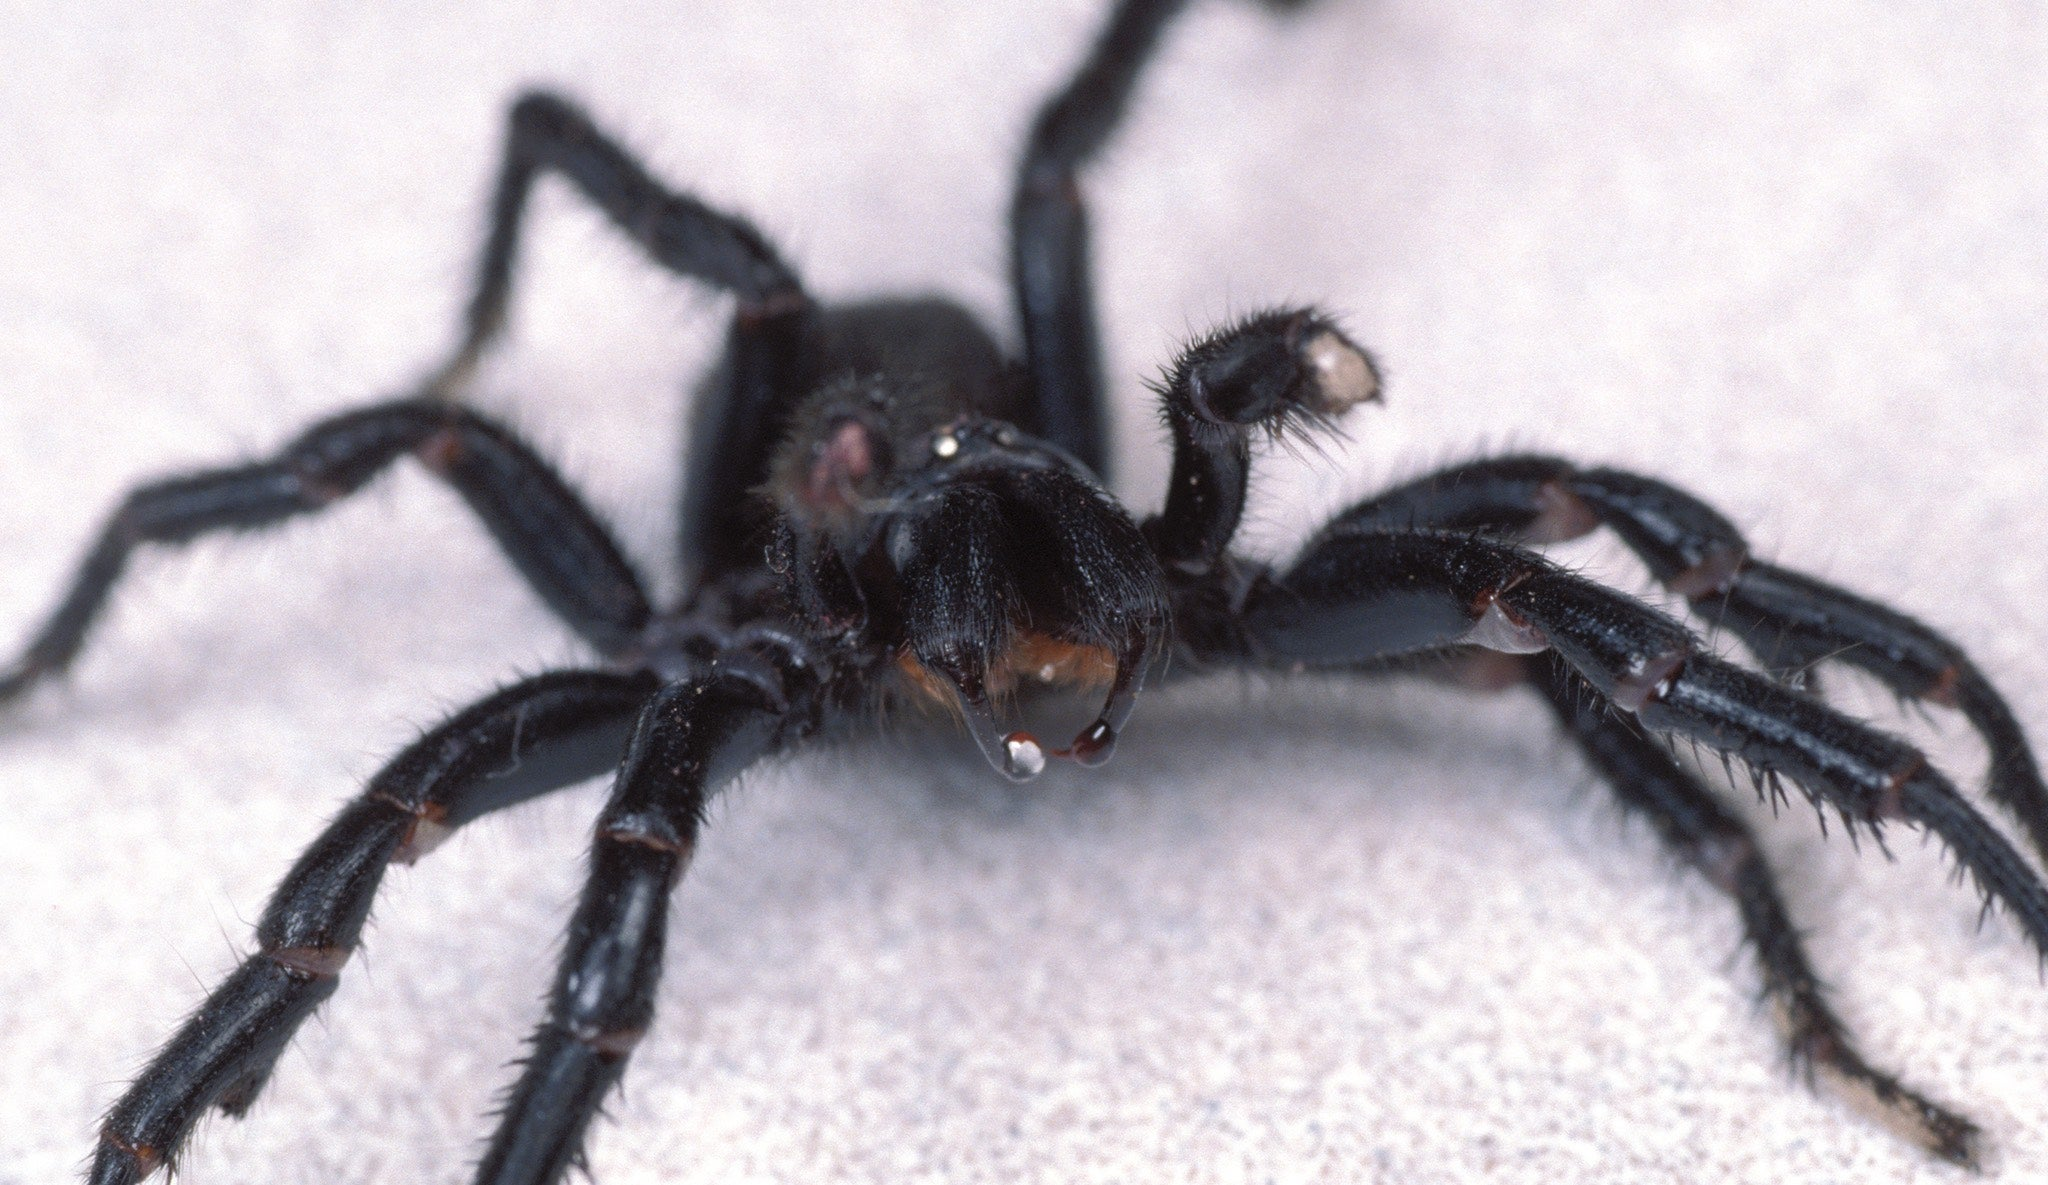 Australian Scientists Inject Spider Venom Into The Brain To Protect It From Strokes